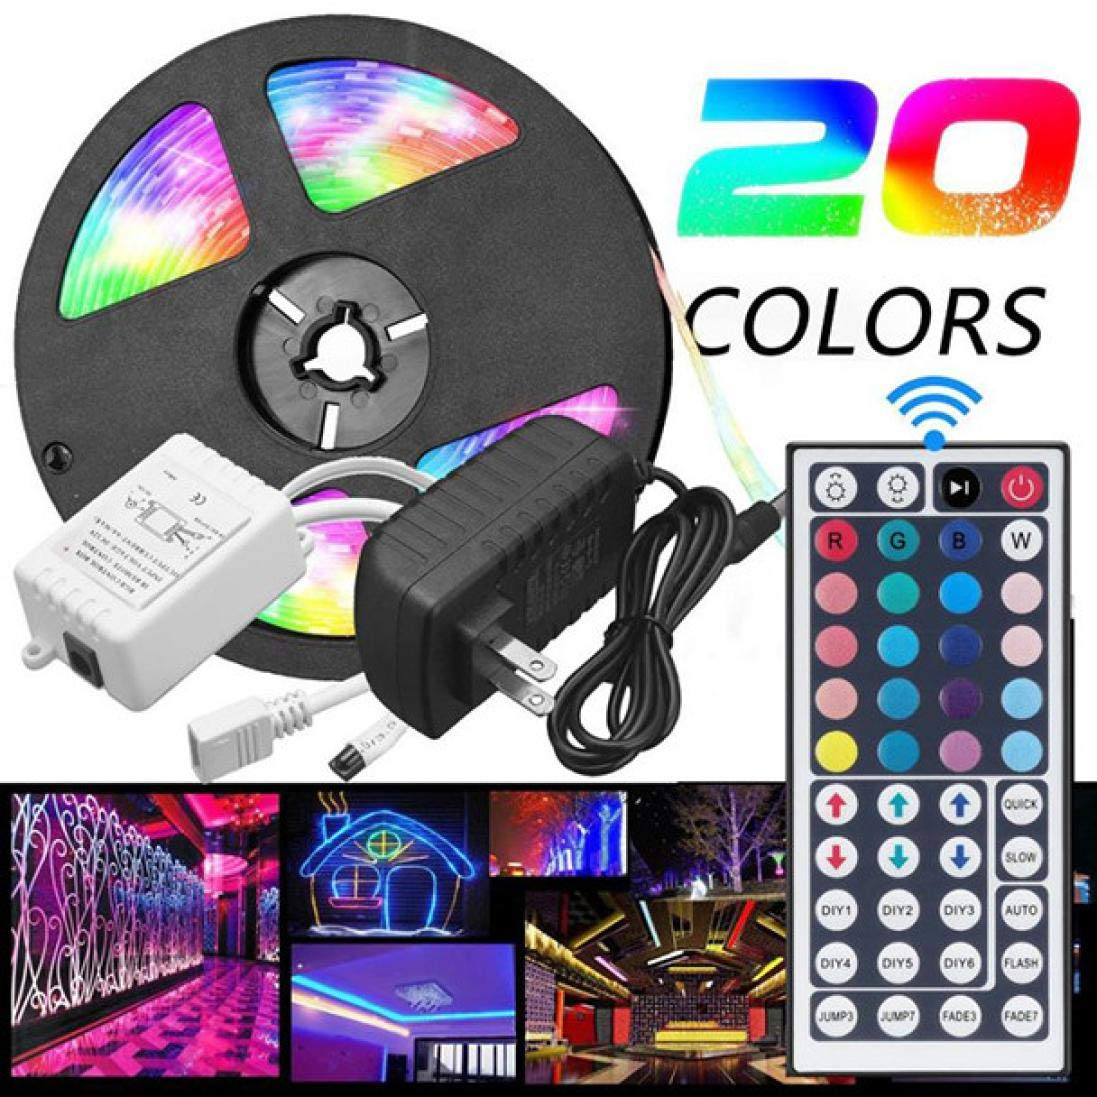 Rumas Waterproof 5050 RGB LED Light 44 Keys Remote Control - 5M 300 LEDs 20 Colors - Light DIY Decor Patio Lawn Street Road Home Office Shop Mall Hotel Dining (Colorful)